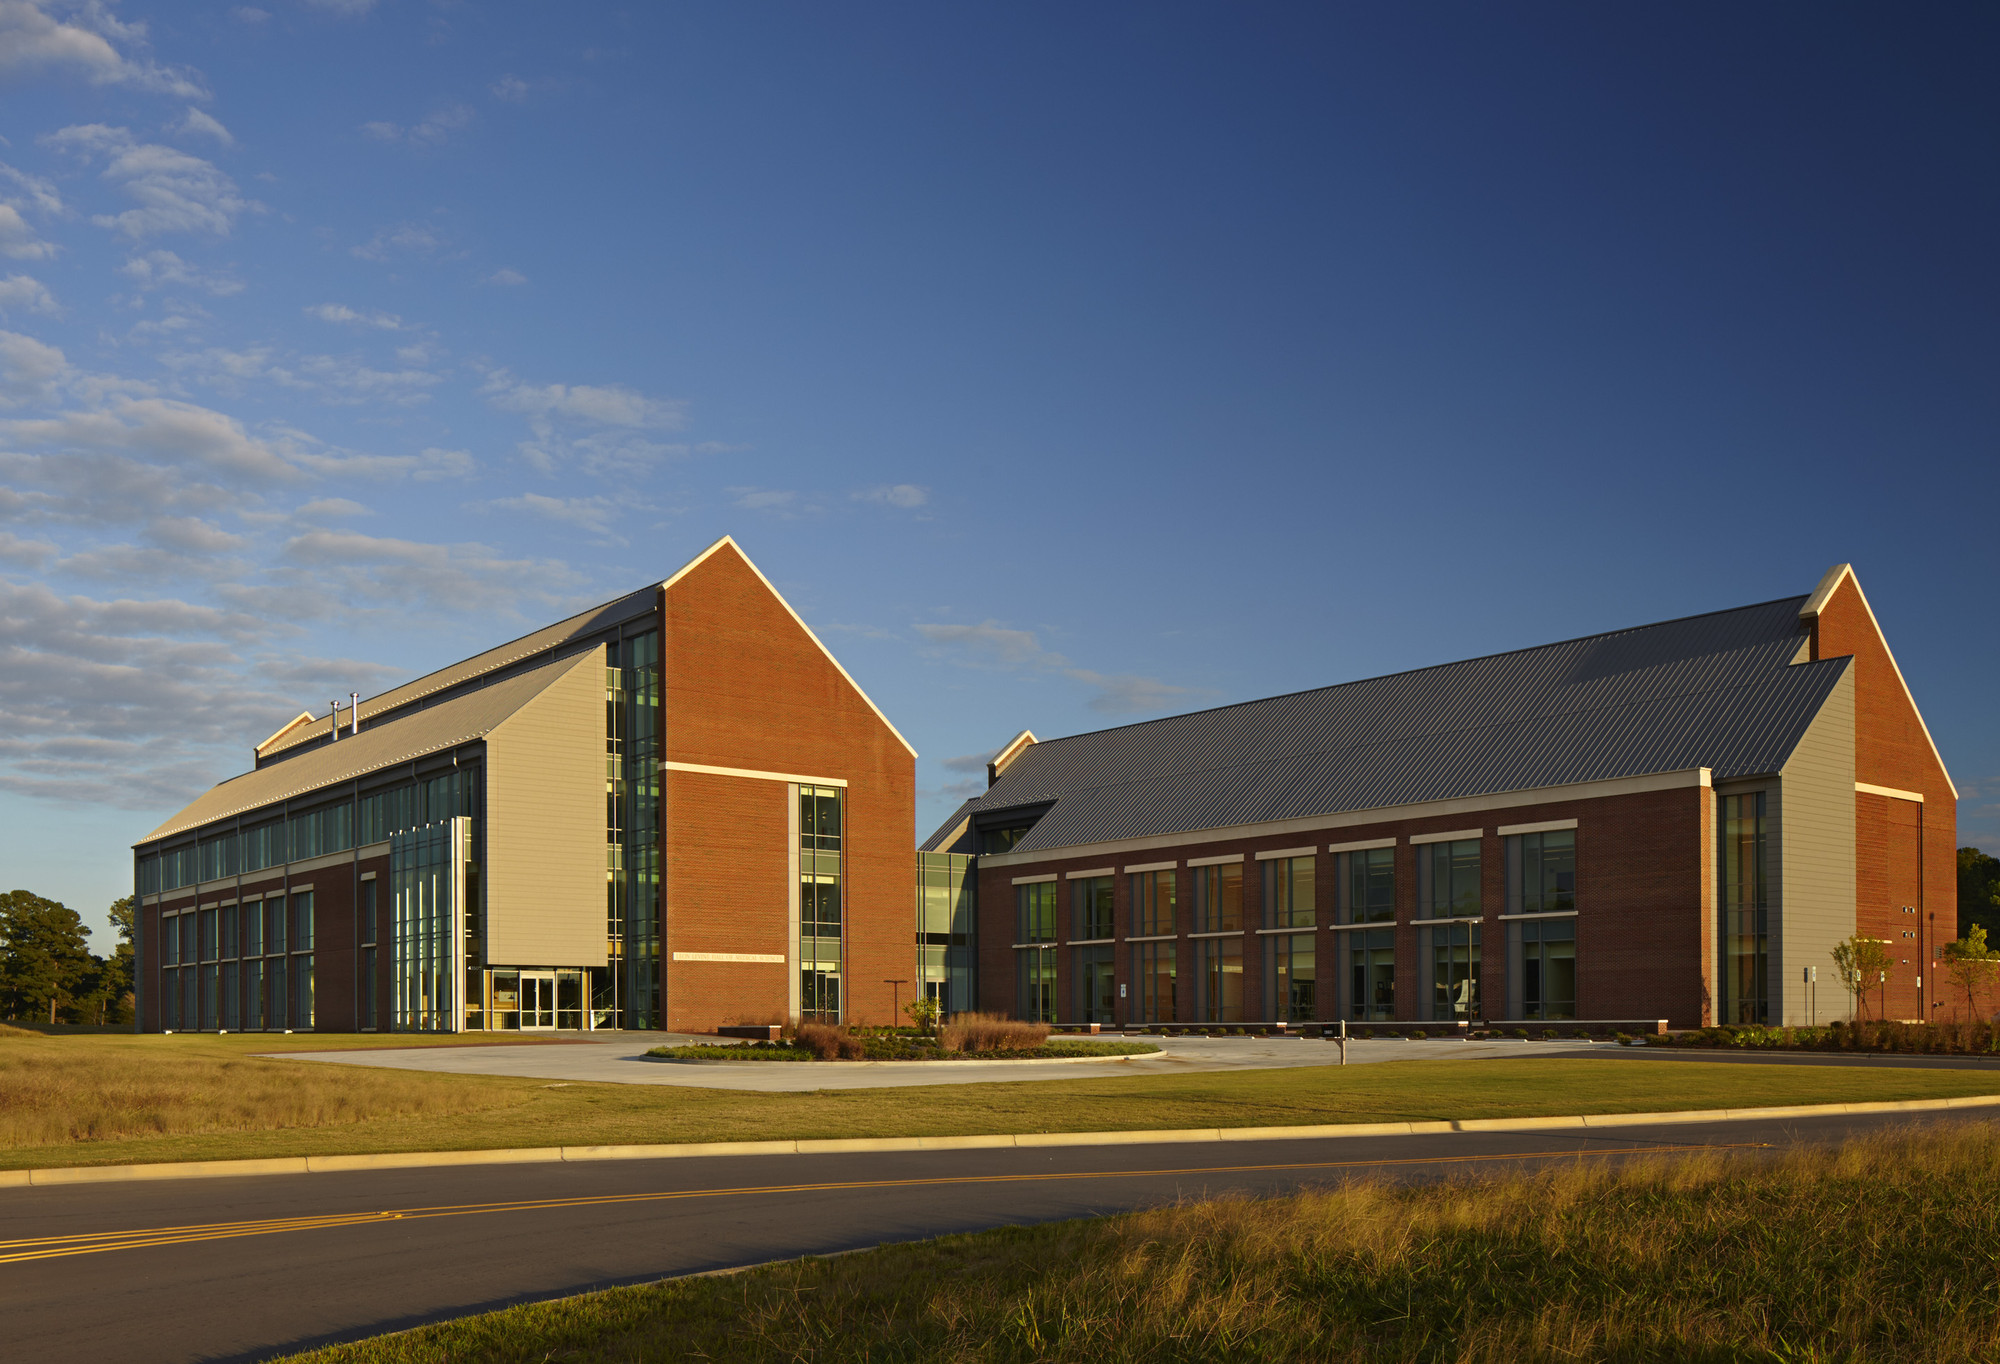 Gallery of Campbell University School of Osteopathic Medicine